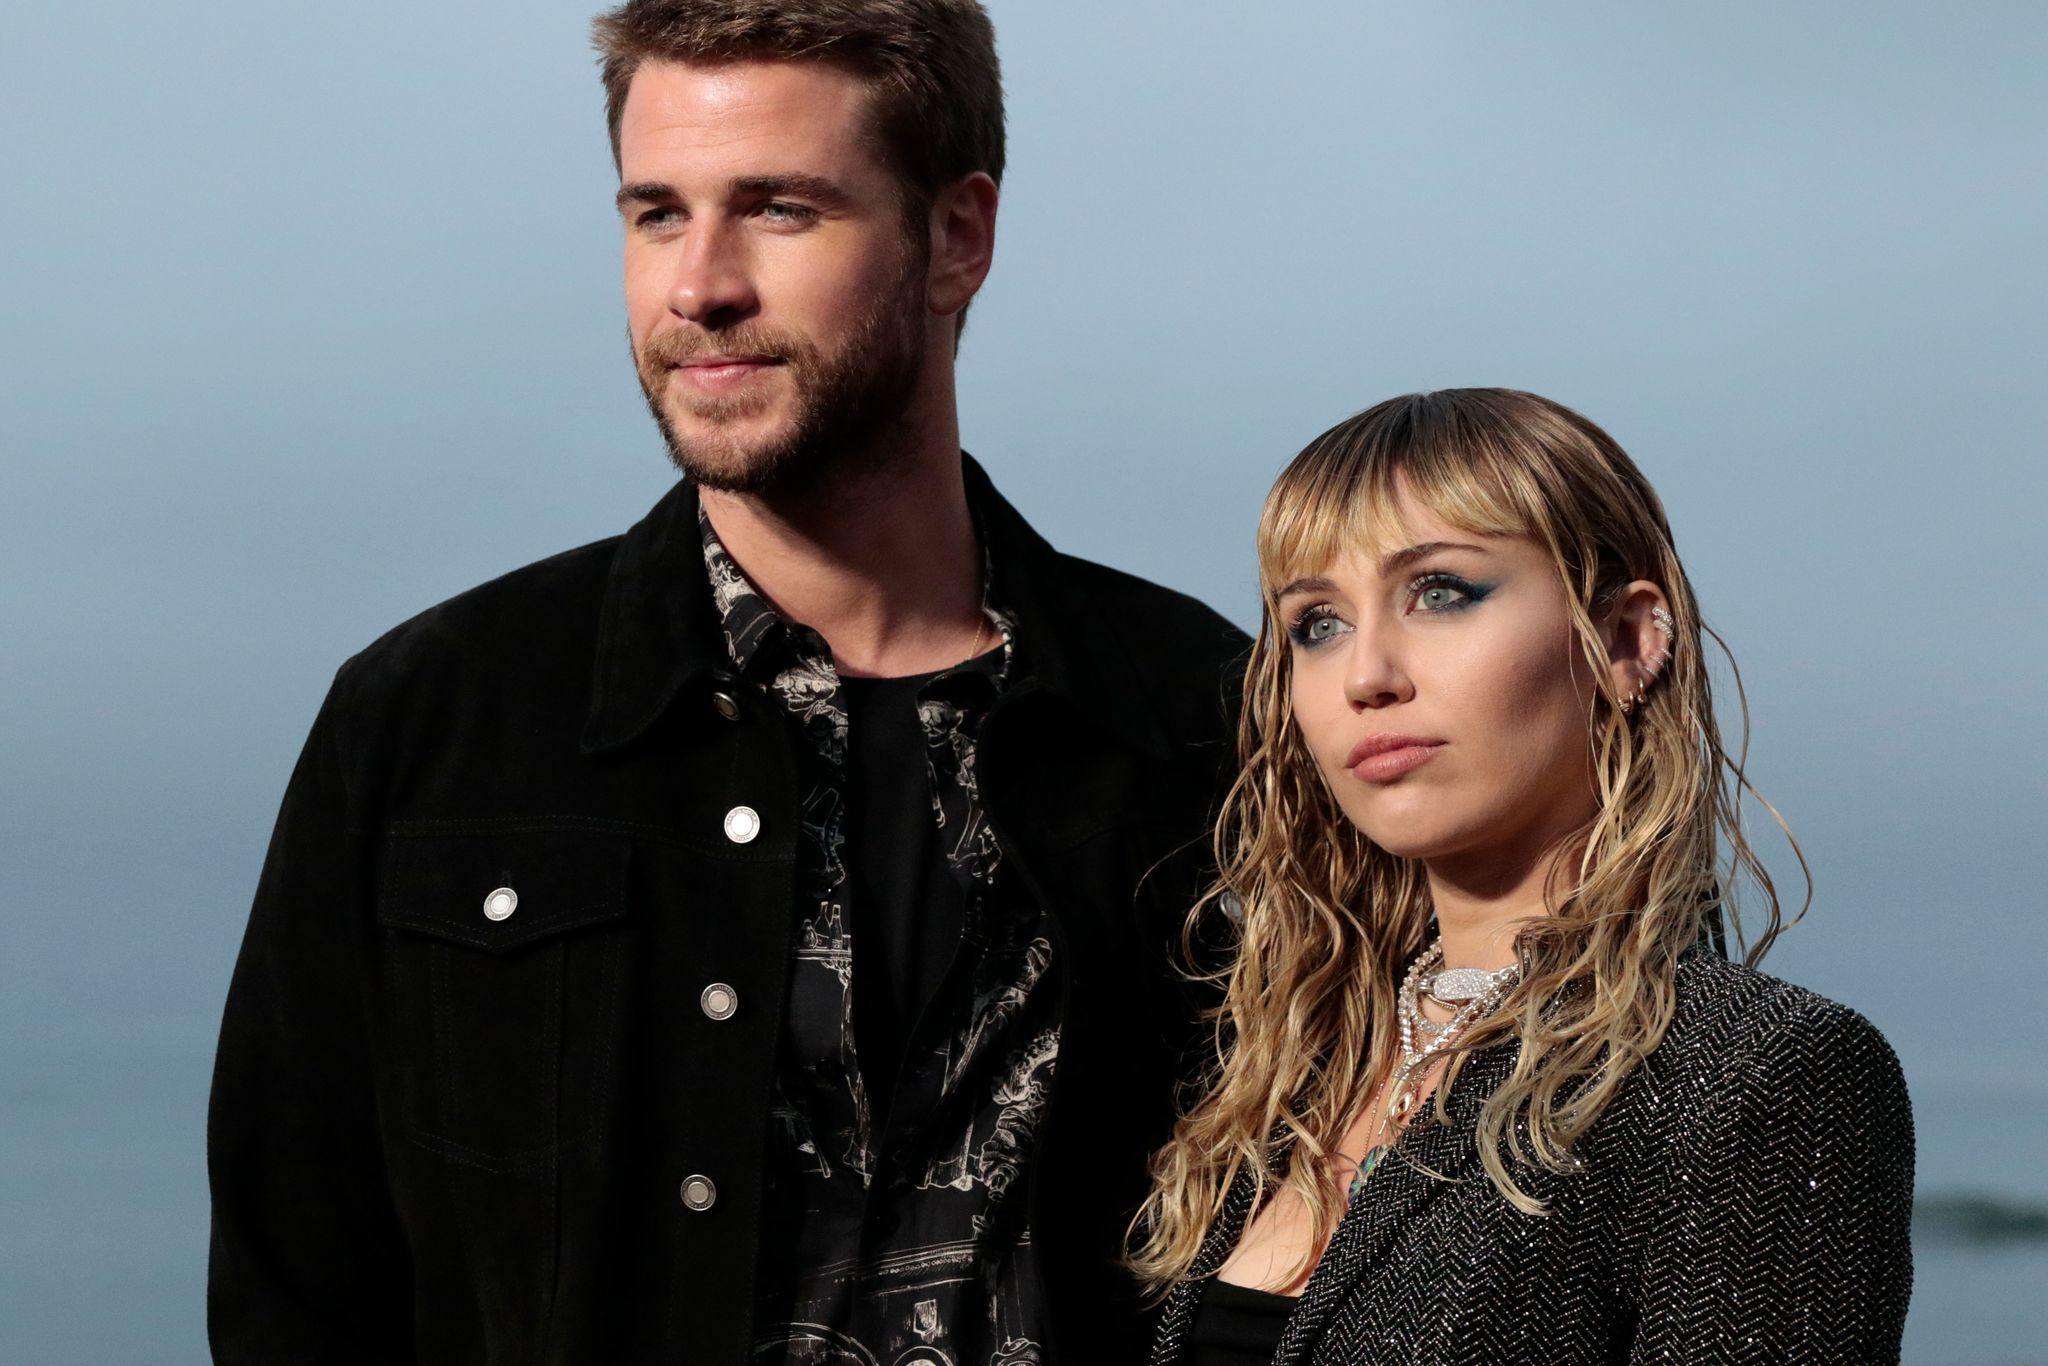 Miley Cyrus and Liam Hemsworth's divorce finalized 5 months after split